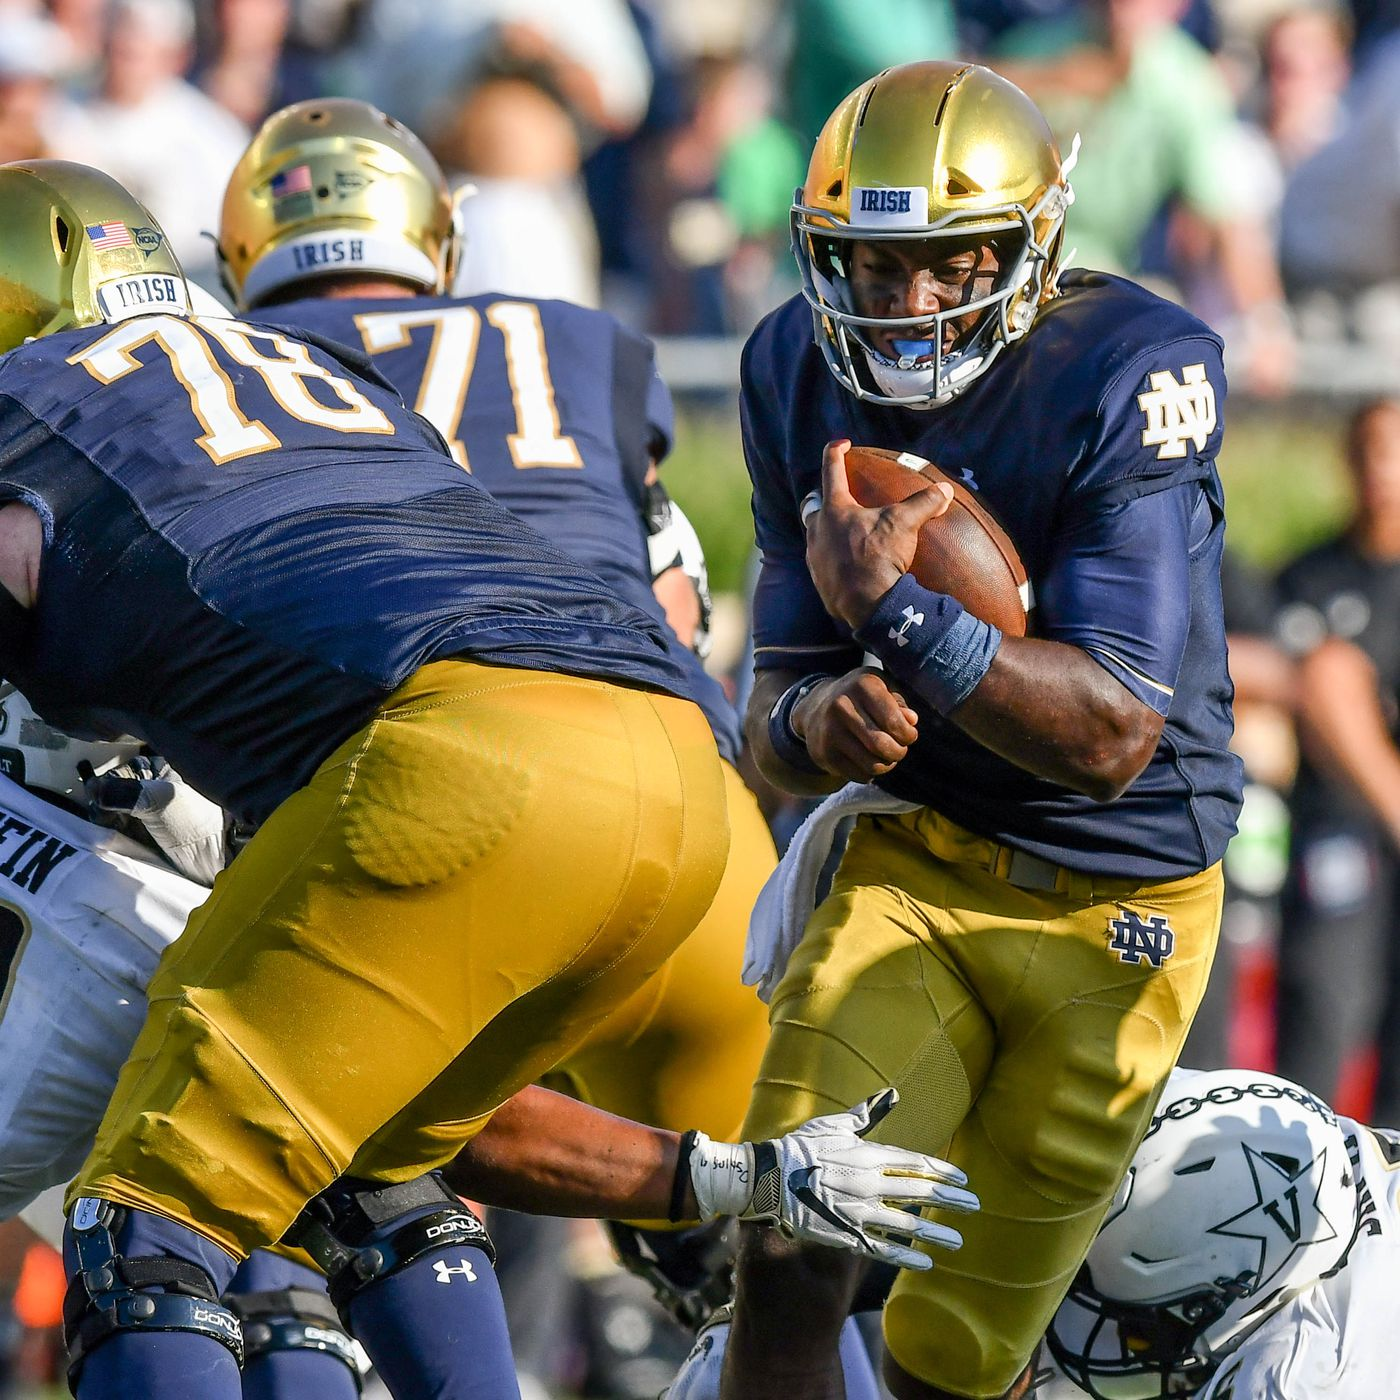 The Best Bets For Week 4 Of College Football Including Notre Dame